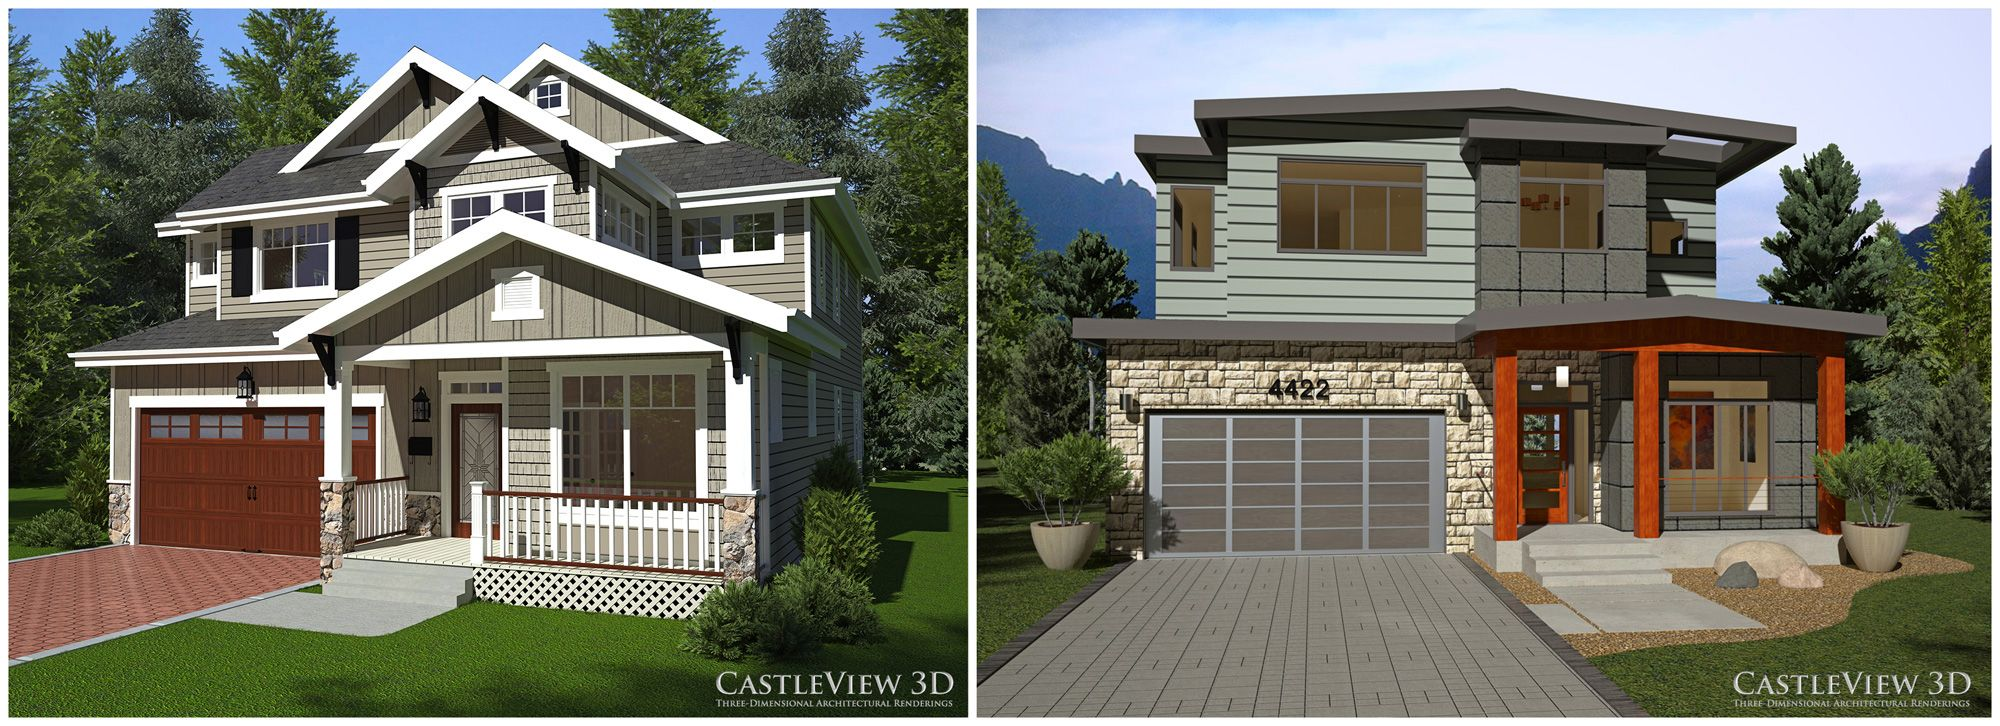 Two 3d renderings of a house one craftsman and one modern for Different house styles pictures